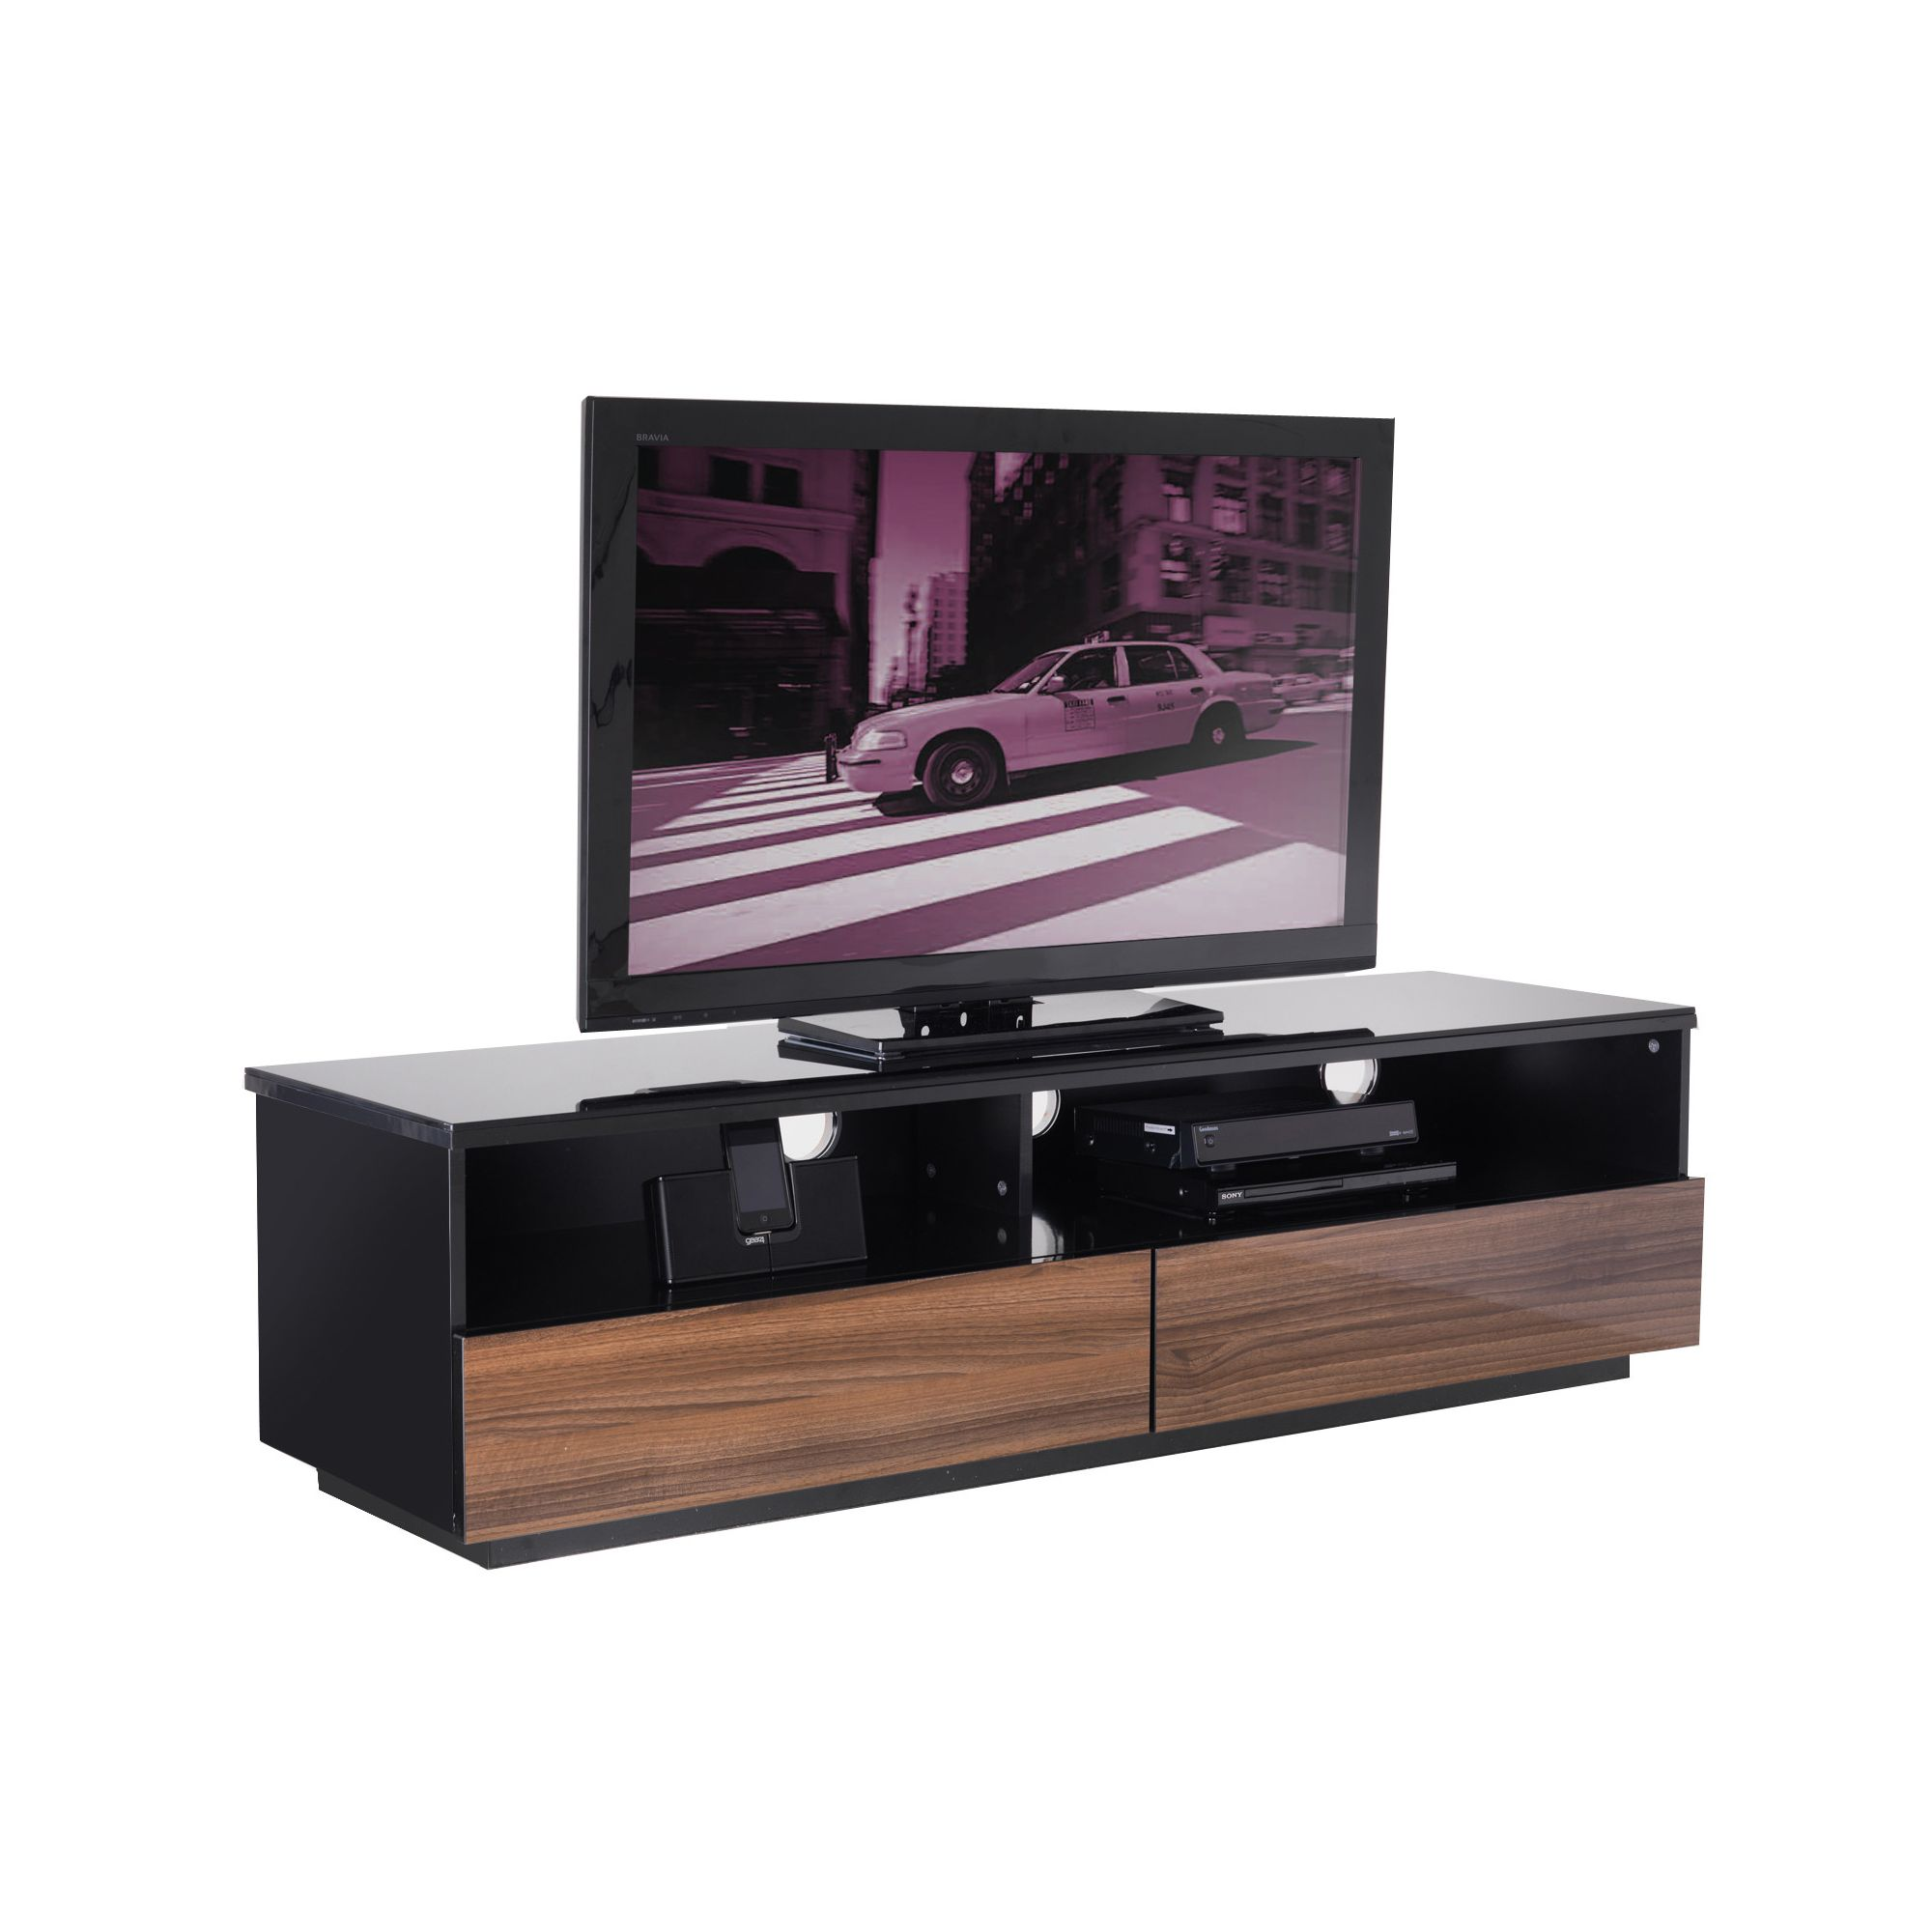 UK-CF City Scape New York 60'' TV Stand - Walnut at Tesco Direct